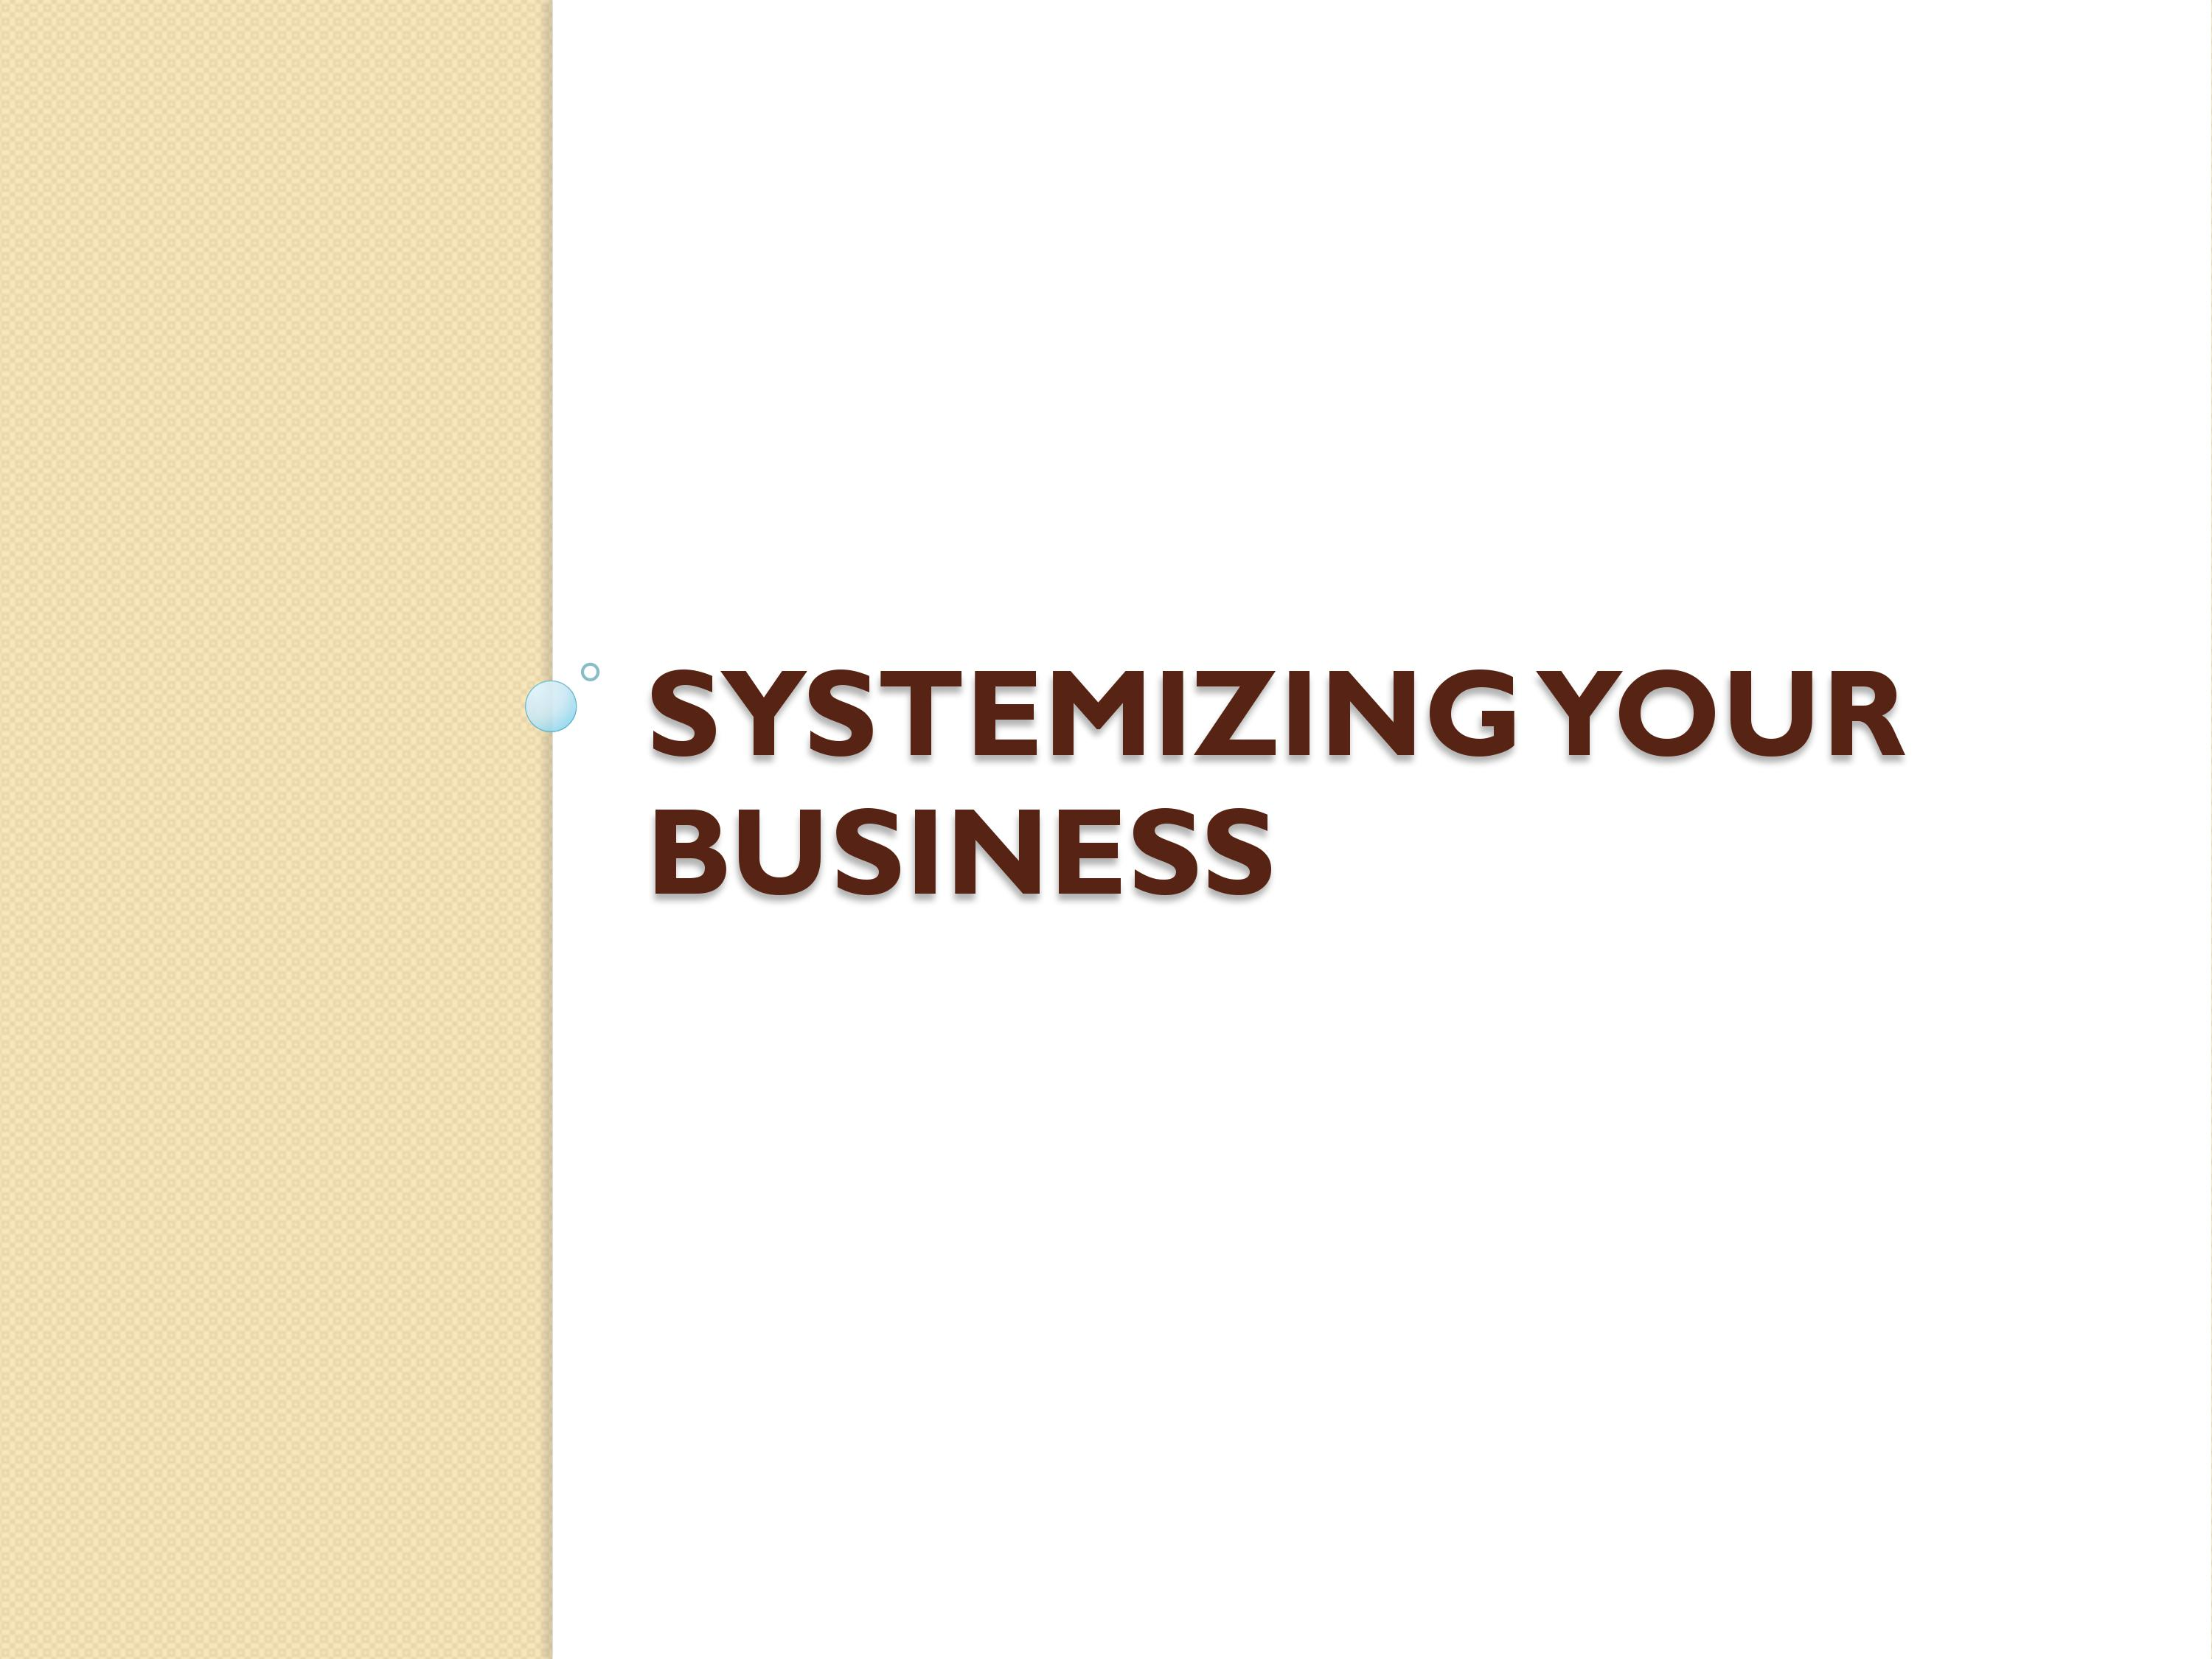 Systemizing Your Business